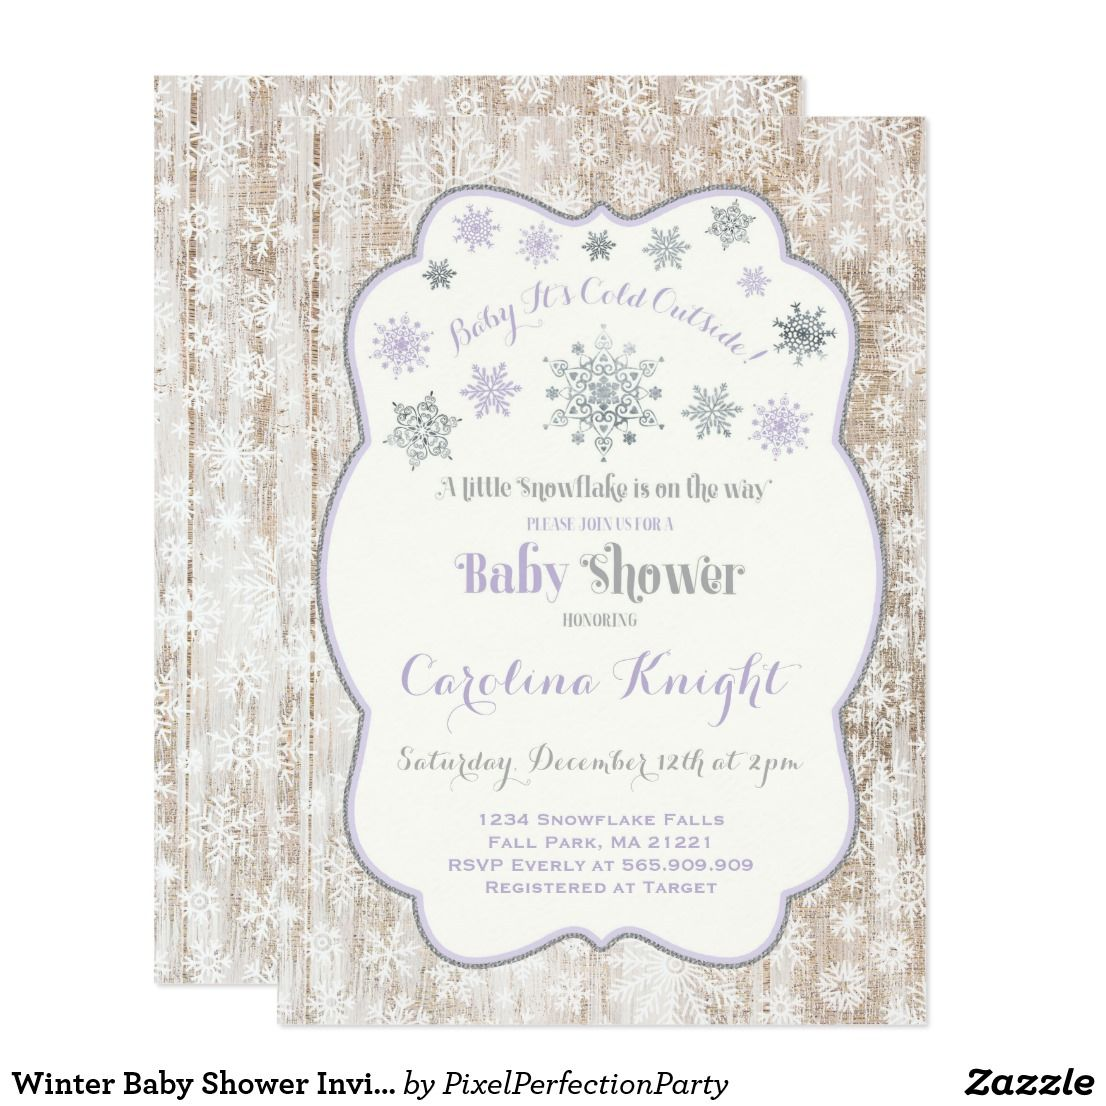 Winter Baby Shower Invitation Rustic Lilac Silver | Winter baby ...